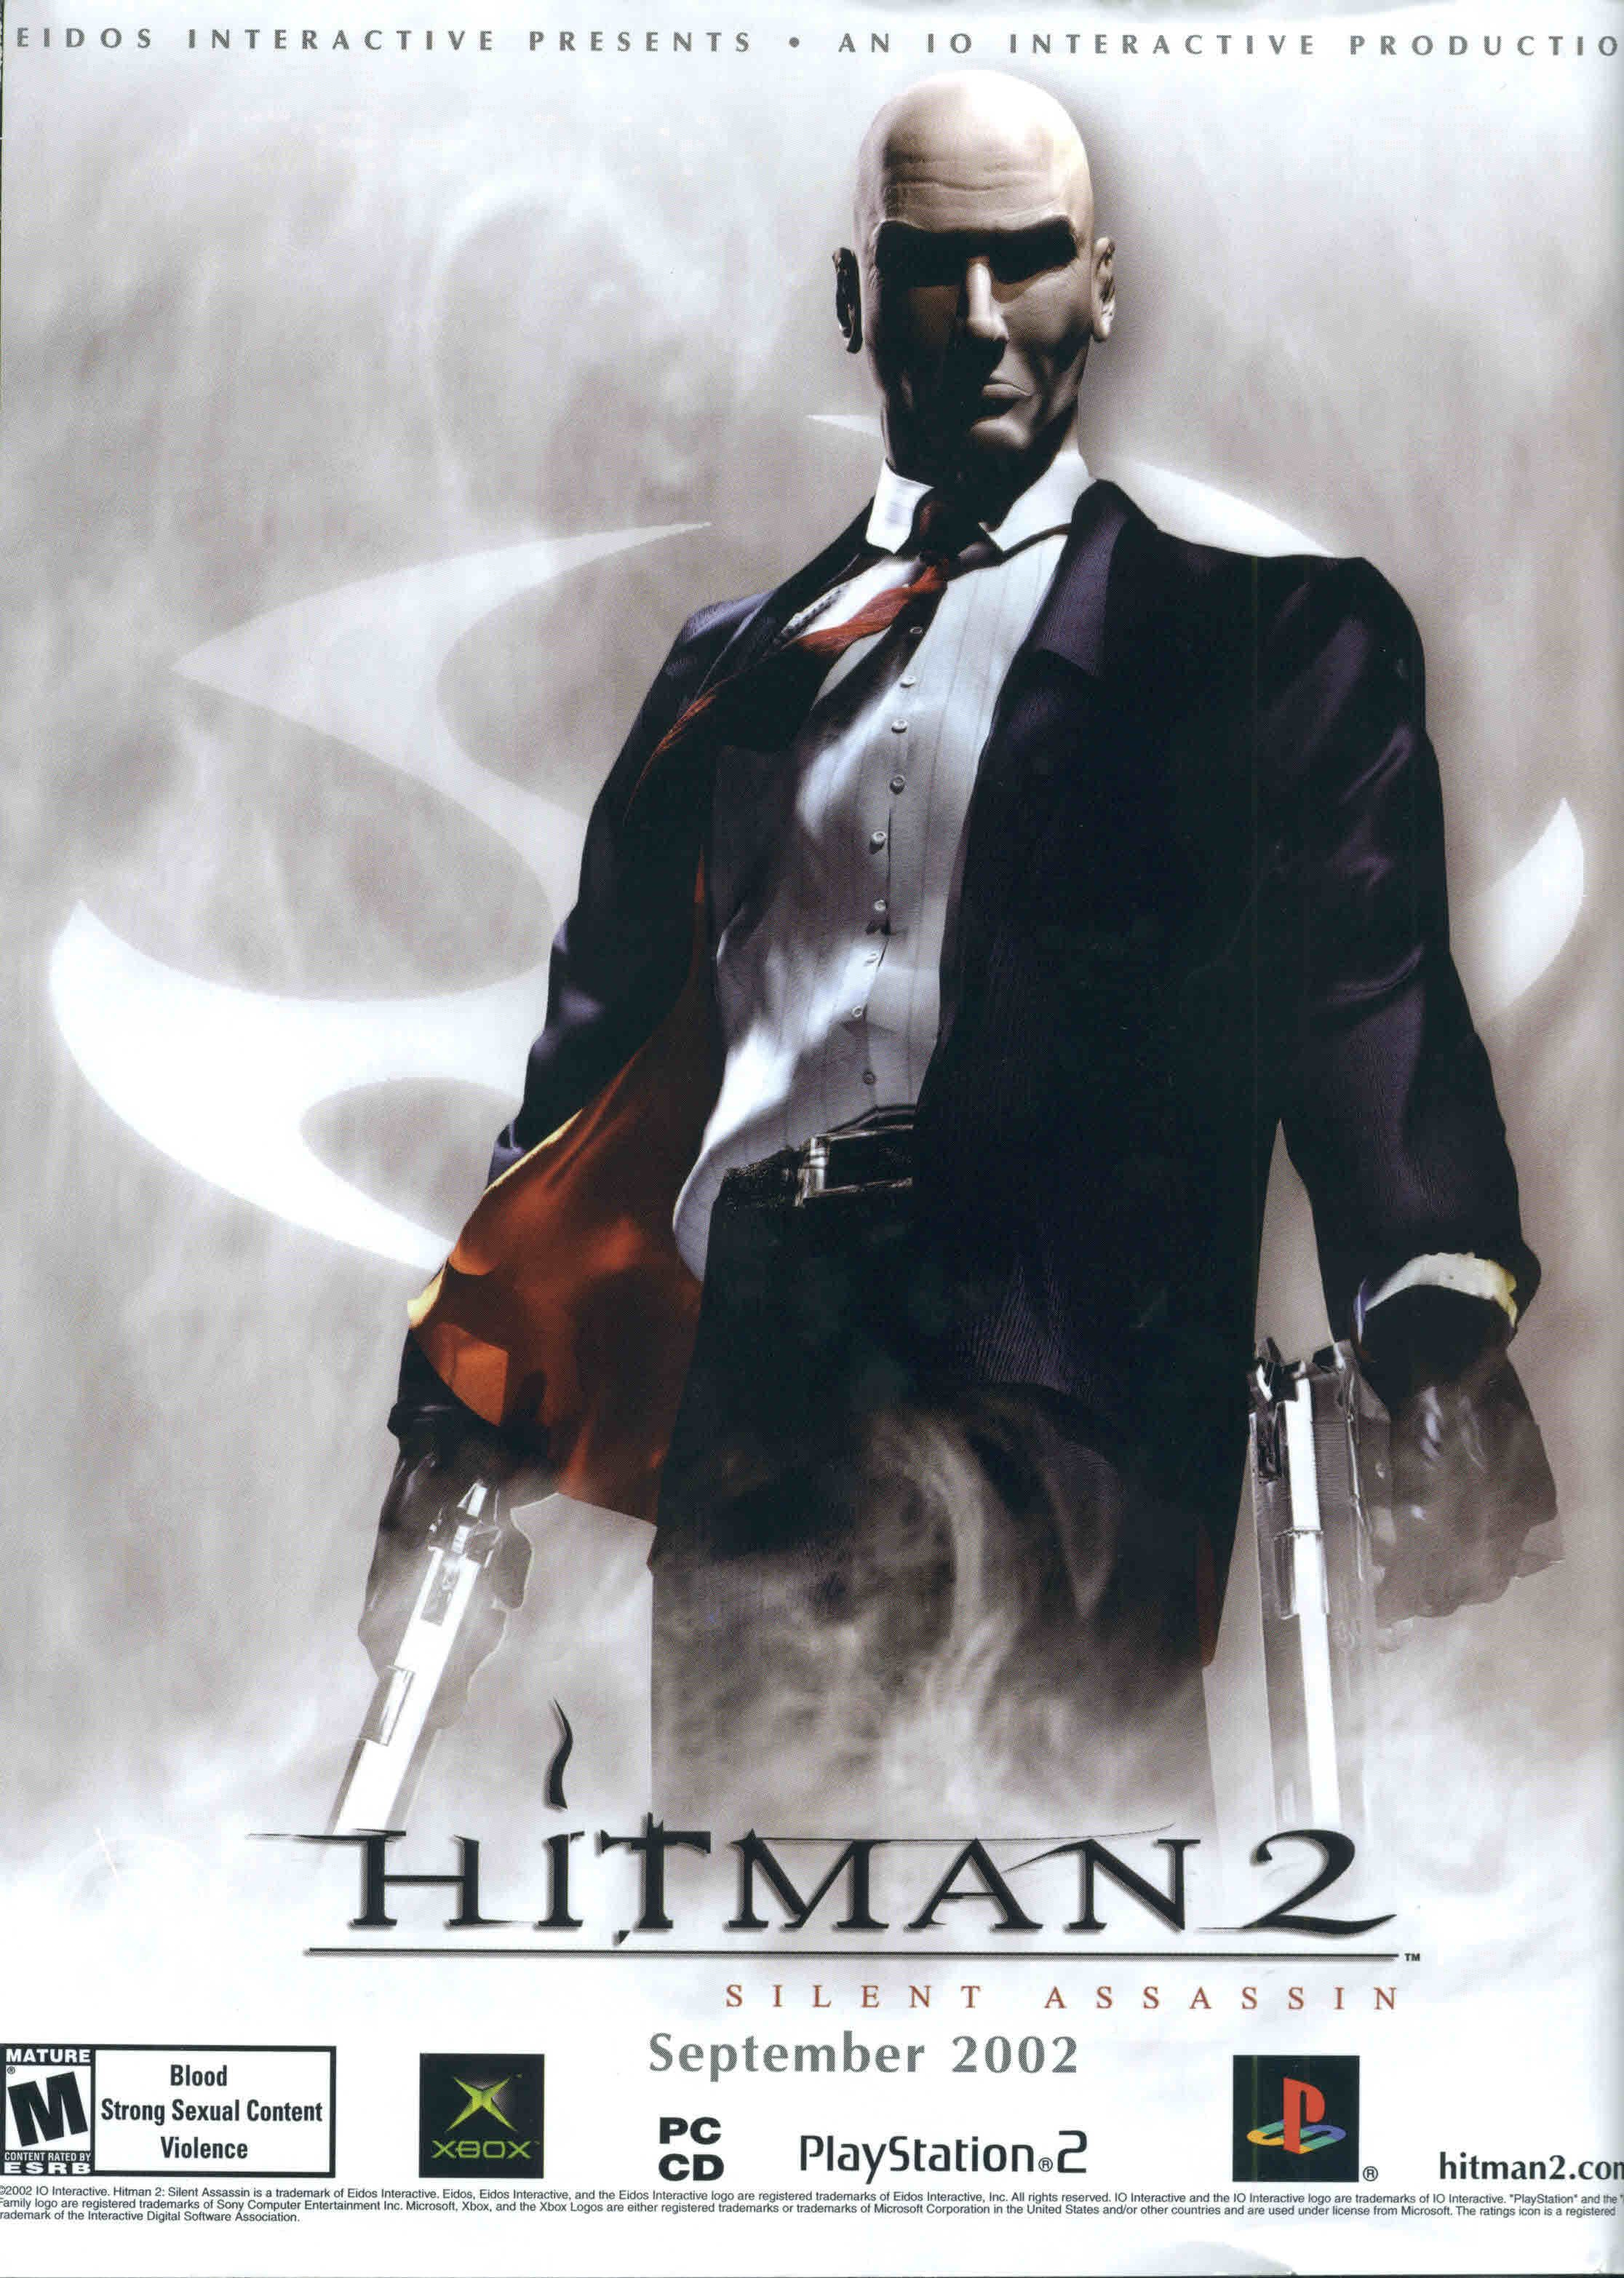 Hitman 2 Silent Assassin Video Game 2002 Imdb